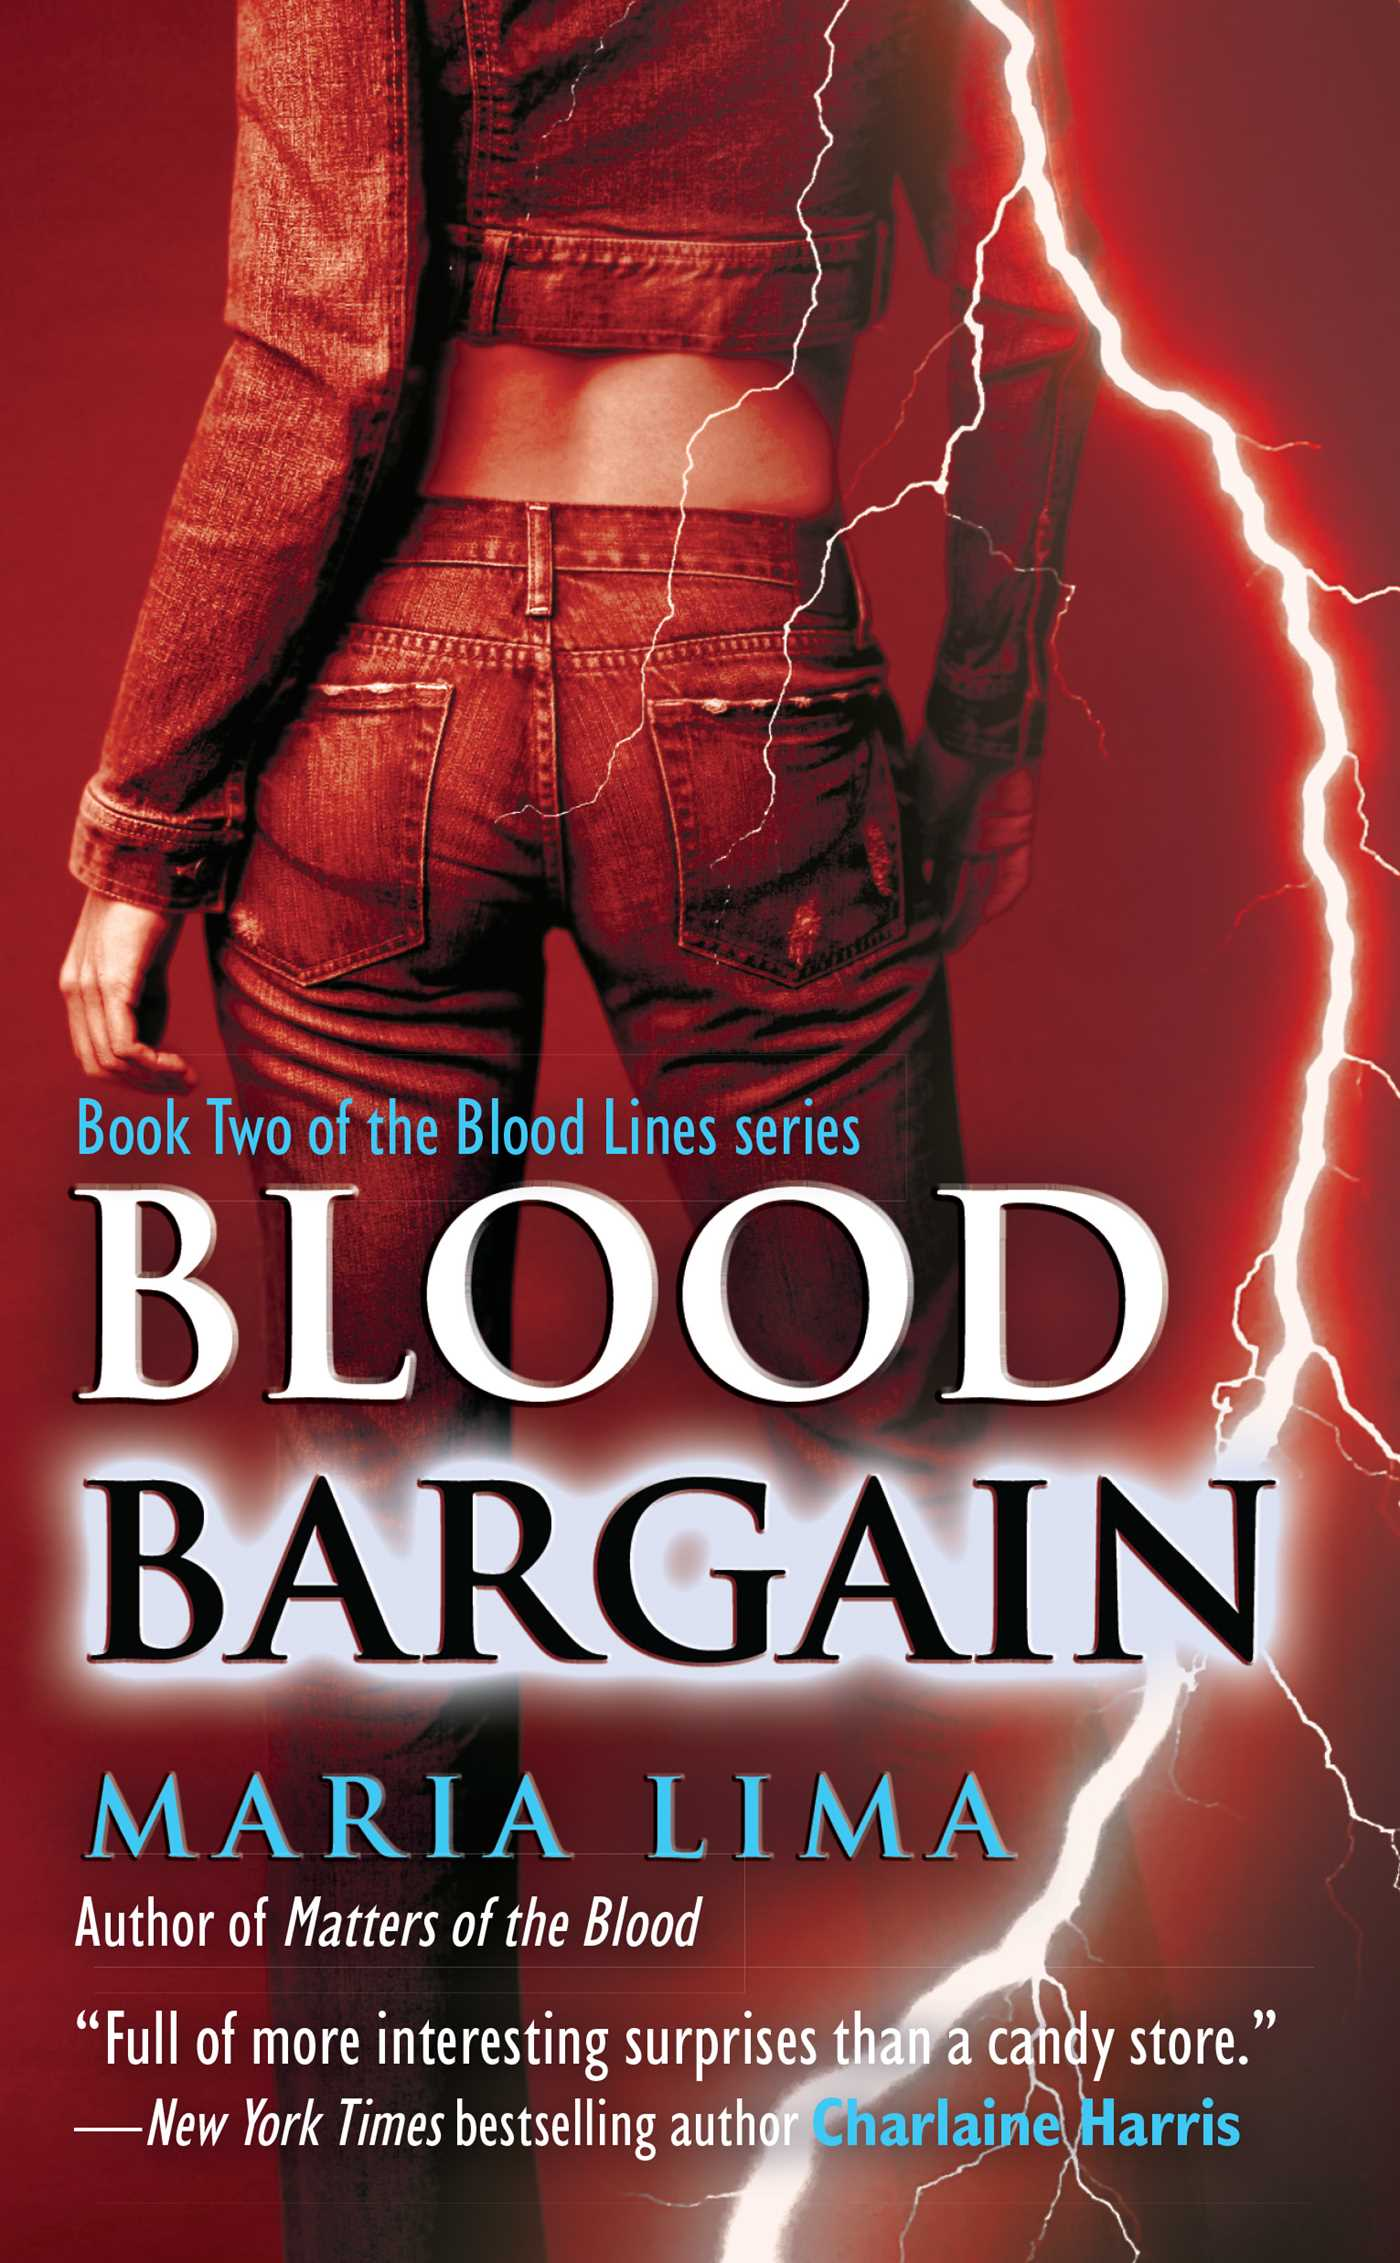 Blood-bargain-9781439166727_hr